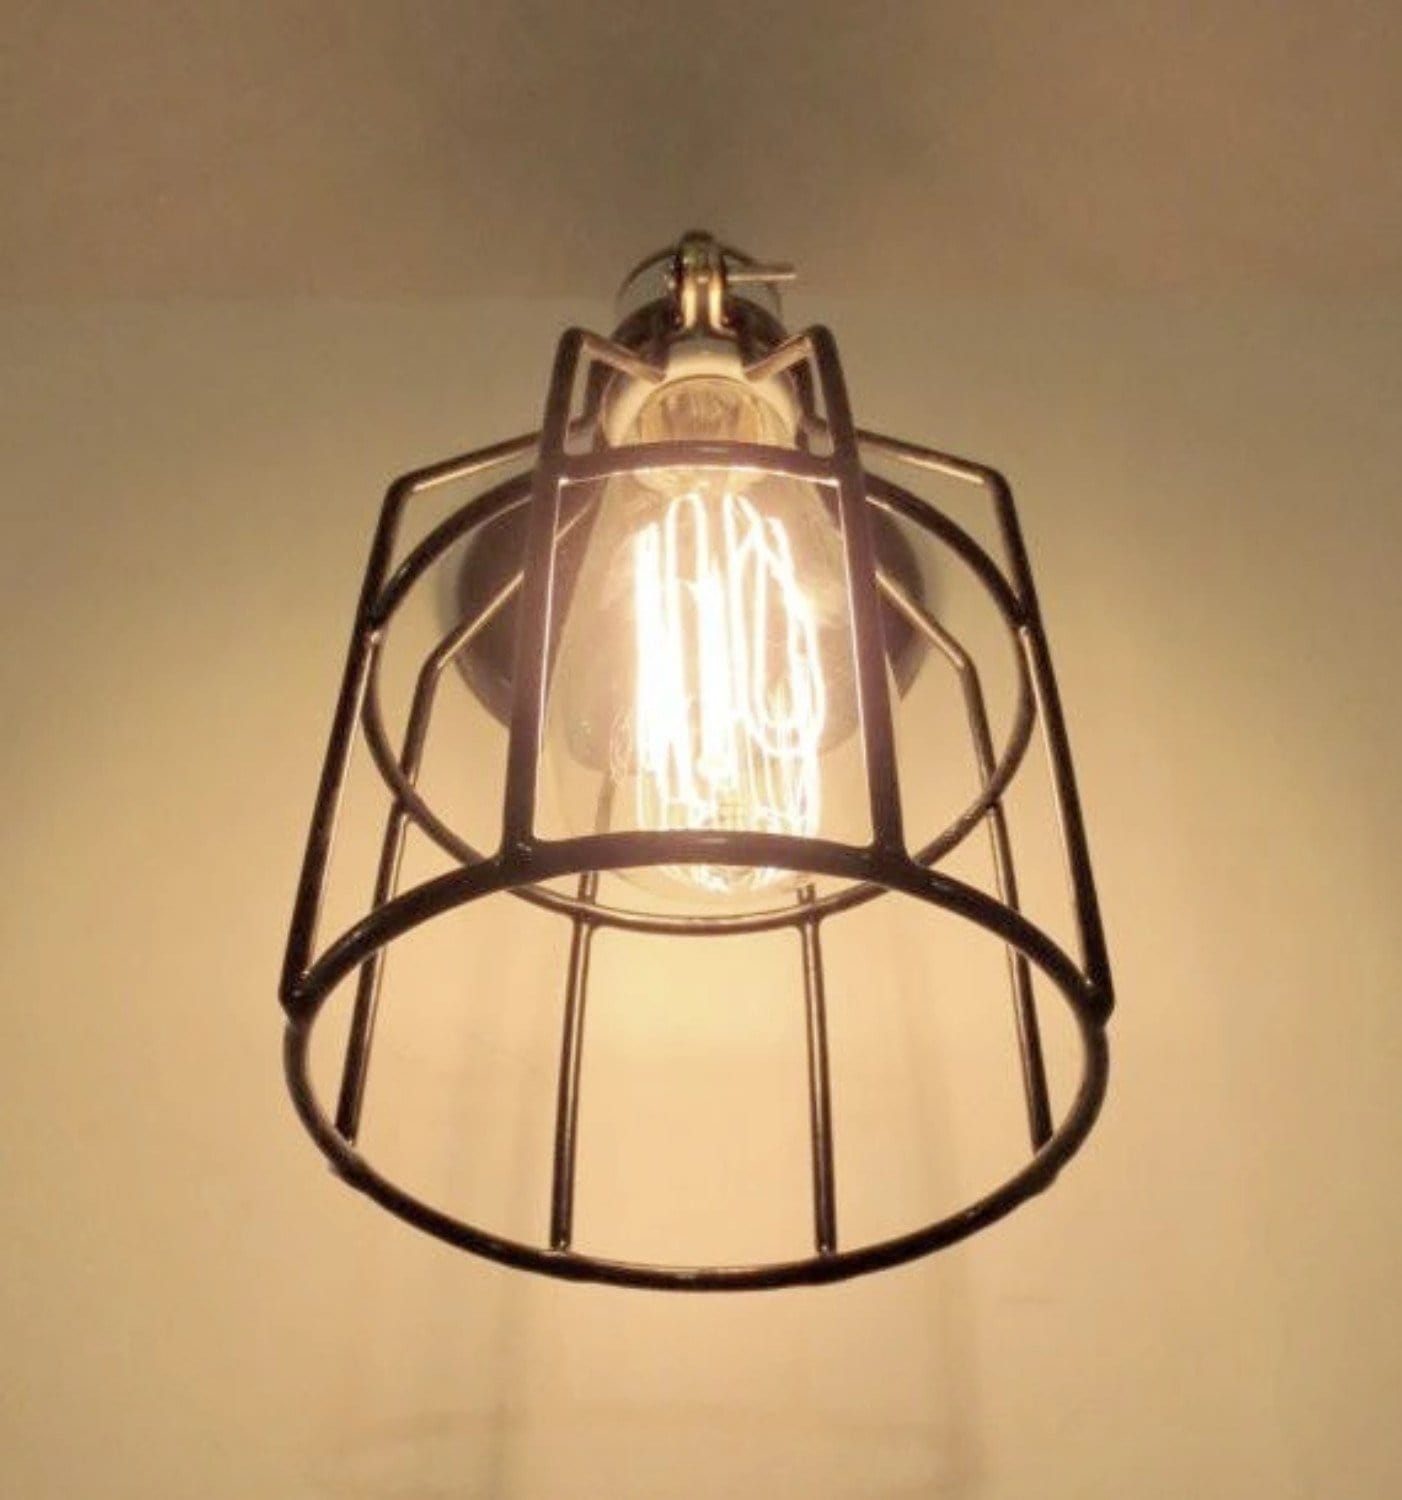 no edison bulb quality wall lighting chrome iron lamp fixtures rustic sconce indoor shade high simple fixture retro store product